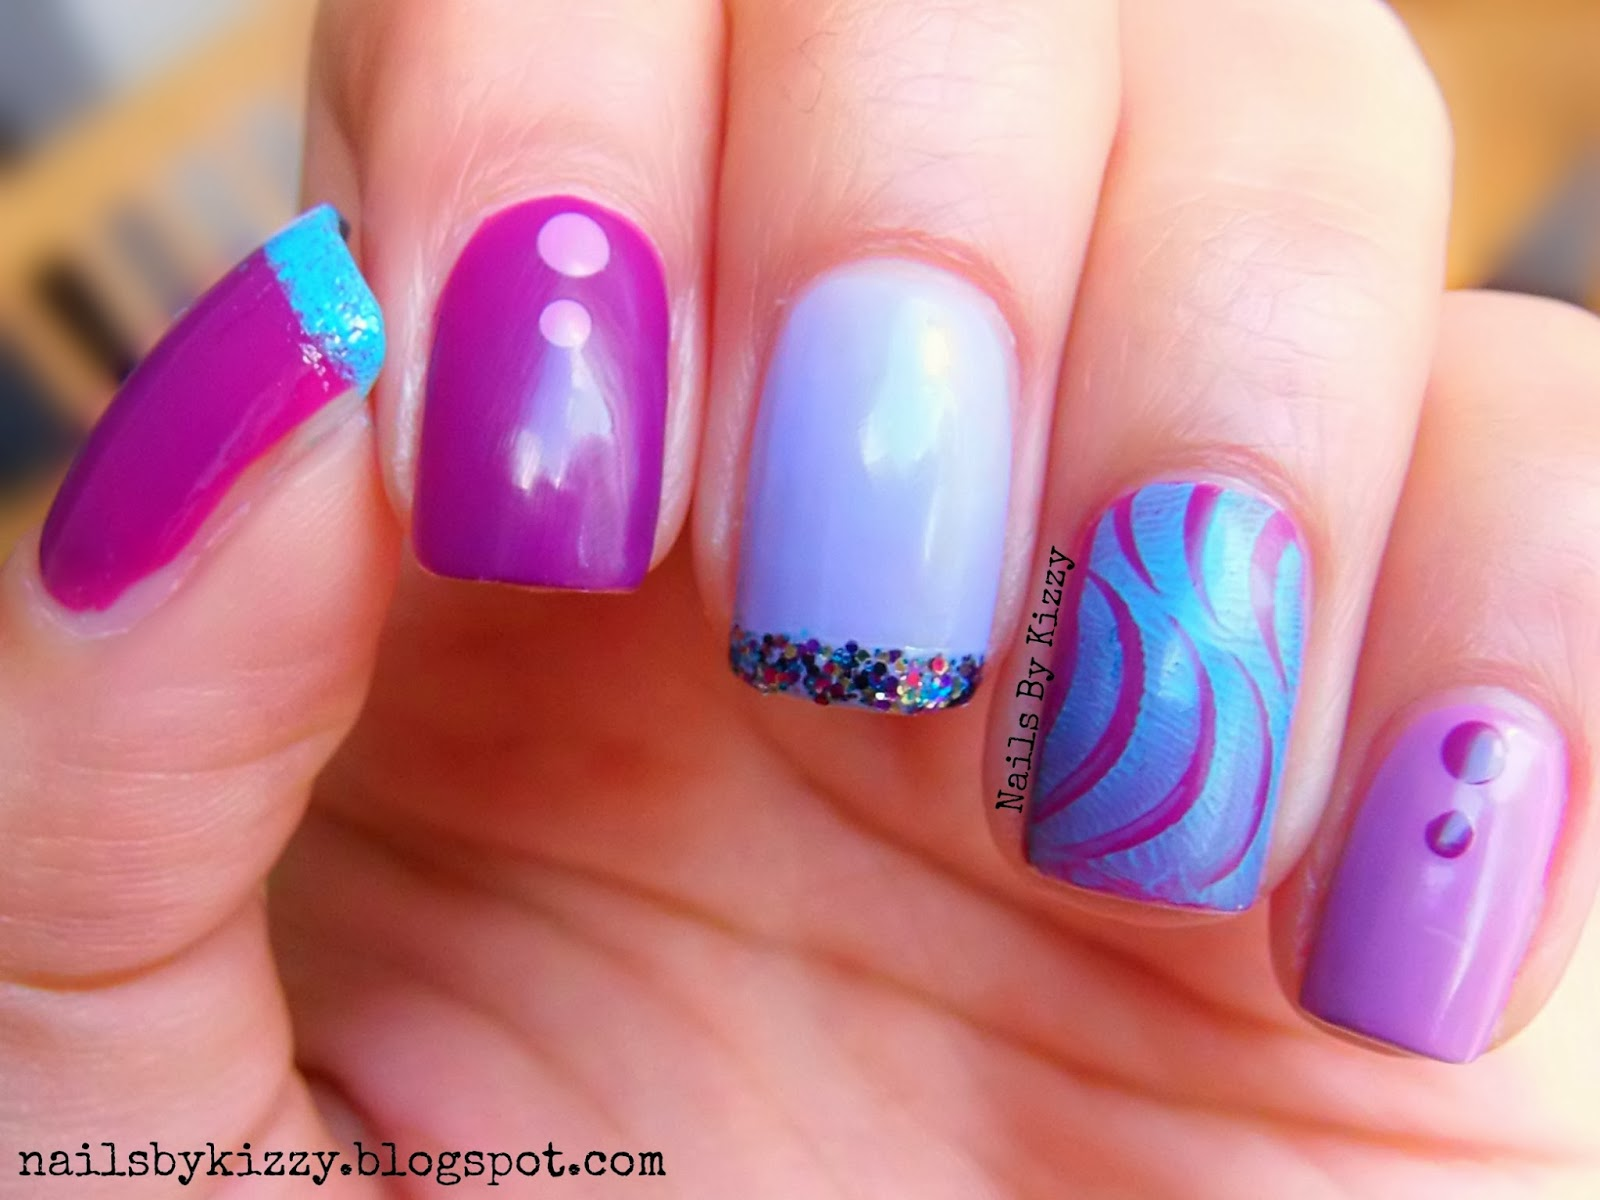 Nails By Kizzy: Nail Art Weekly Project - Week 4